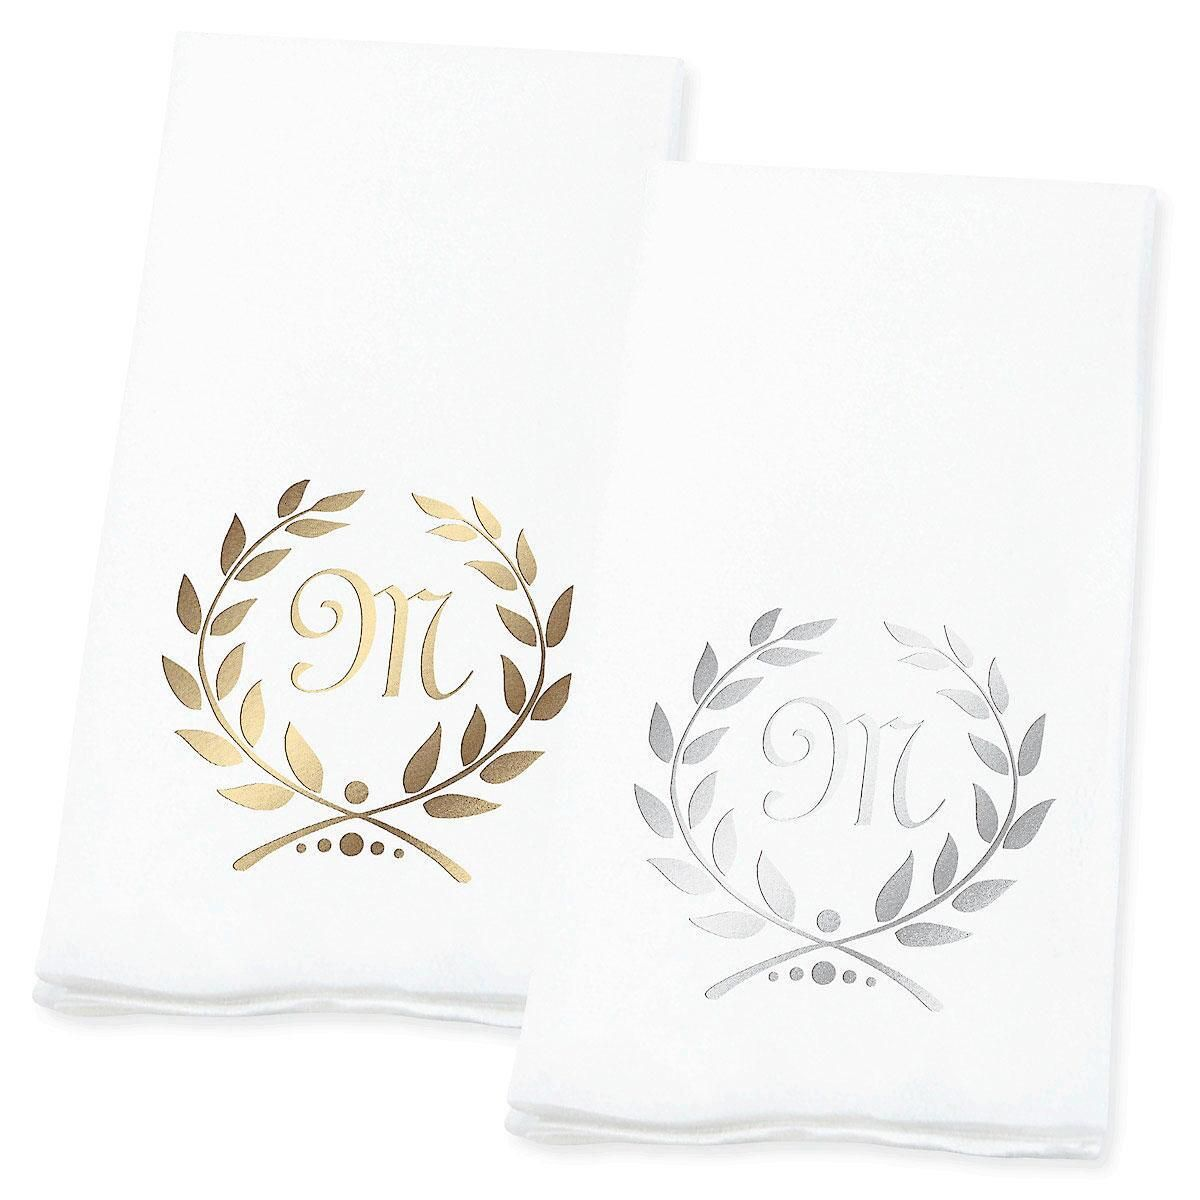 Wreath Initial Foil-Stamped Disposable Hand Towels